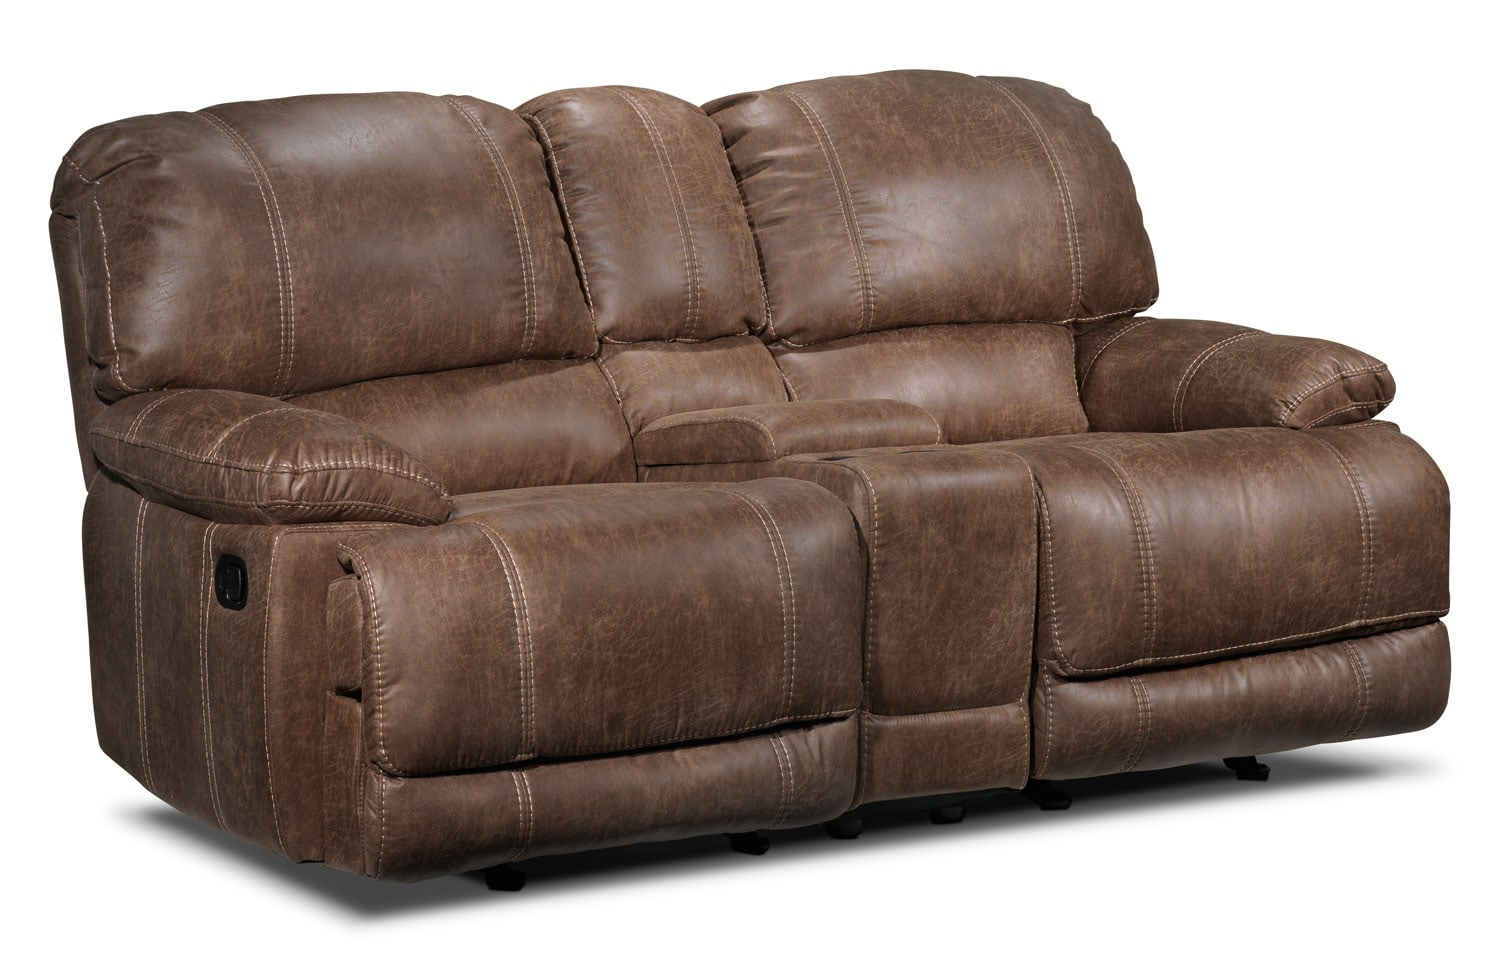 Living Room Furniture - Durango Reclining Loveseat w/ Console - Saddle Brown